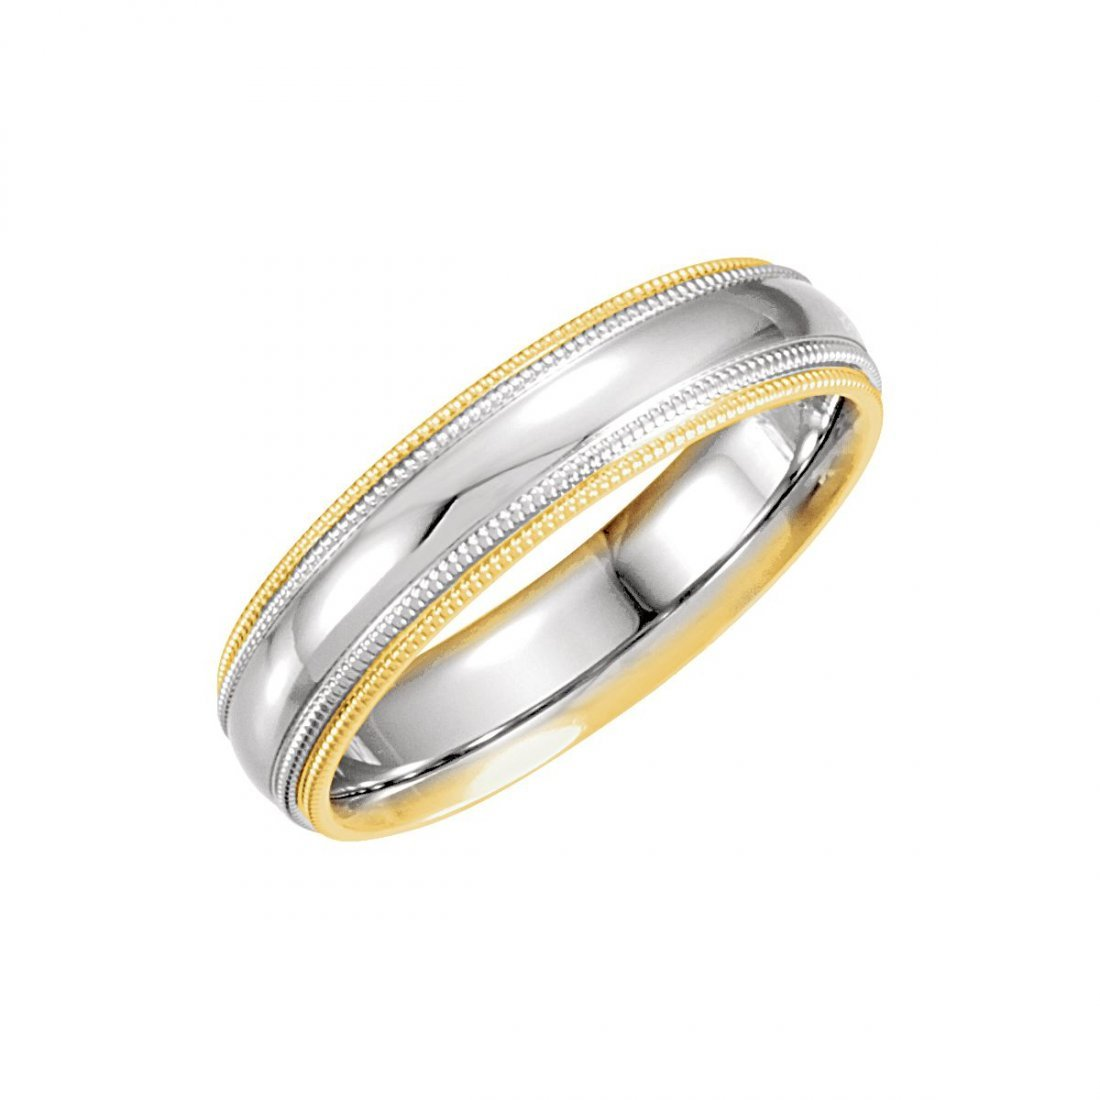 Ring - 14k White Gold & Yellow 5.5mm Comfort-Fit Double